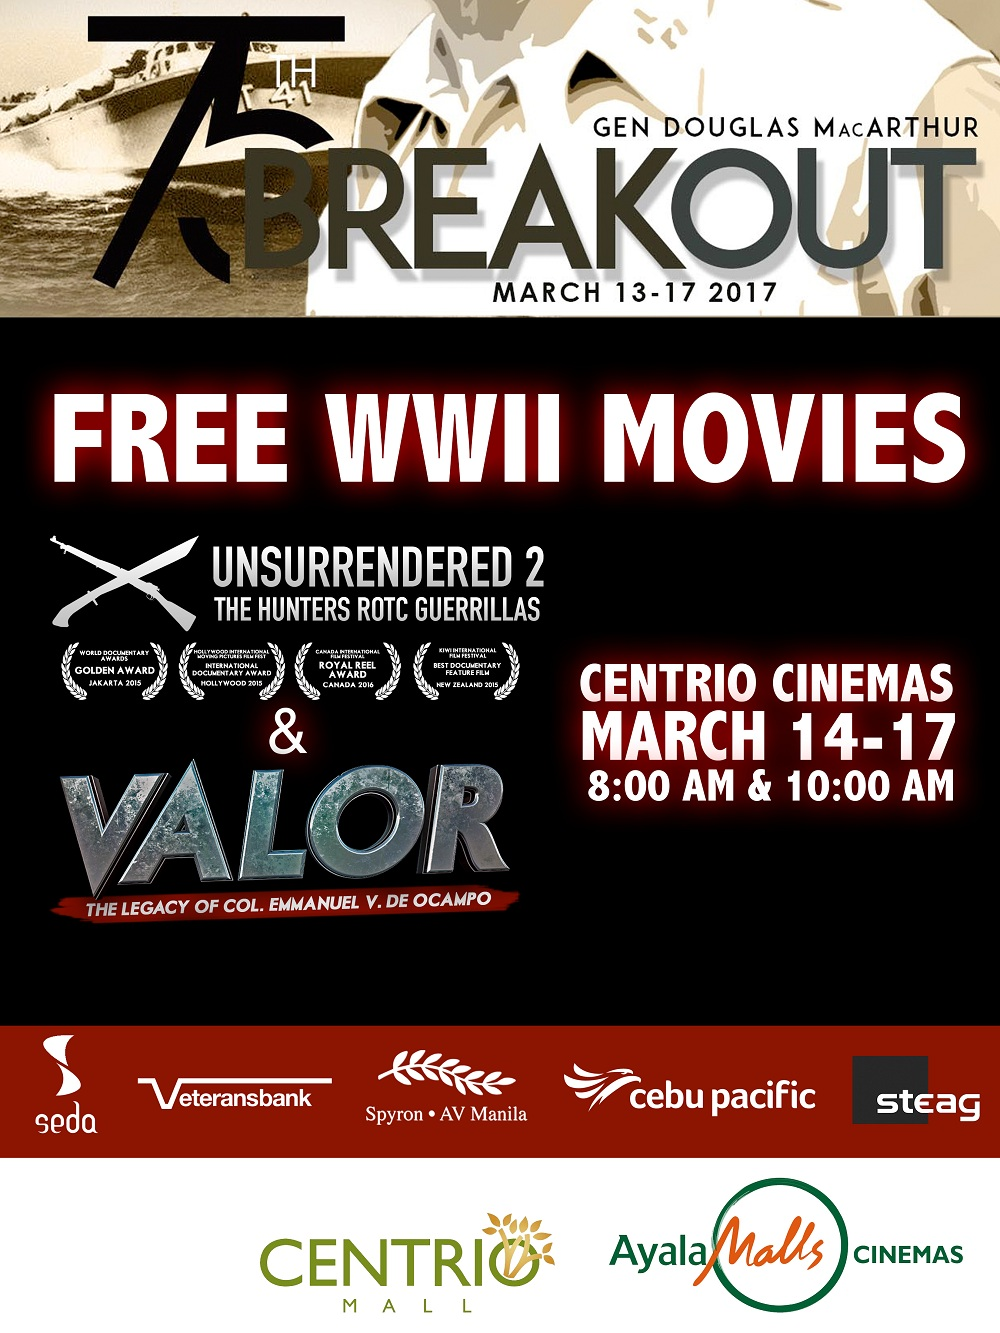 Free WWII Movies